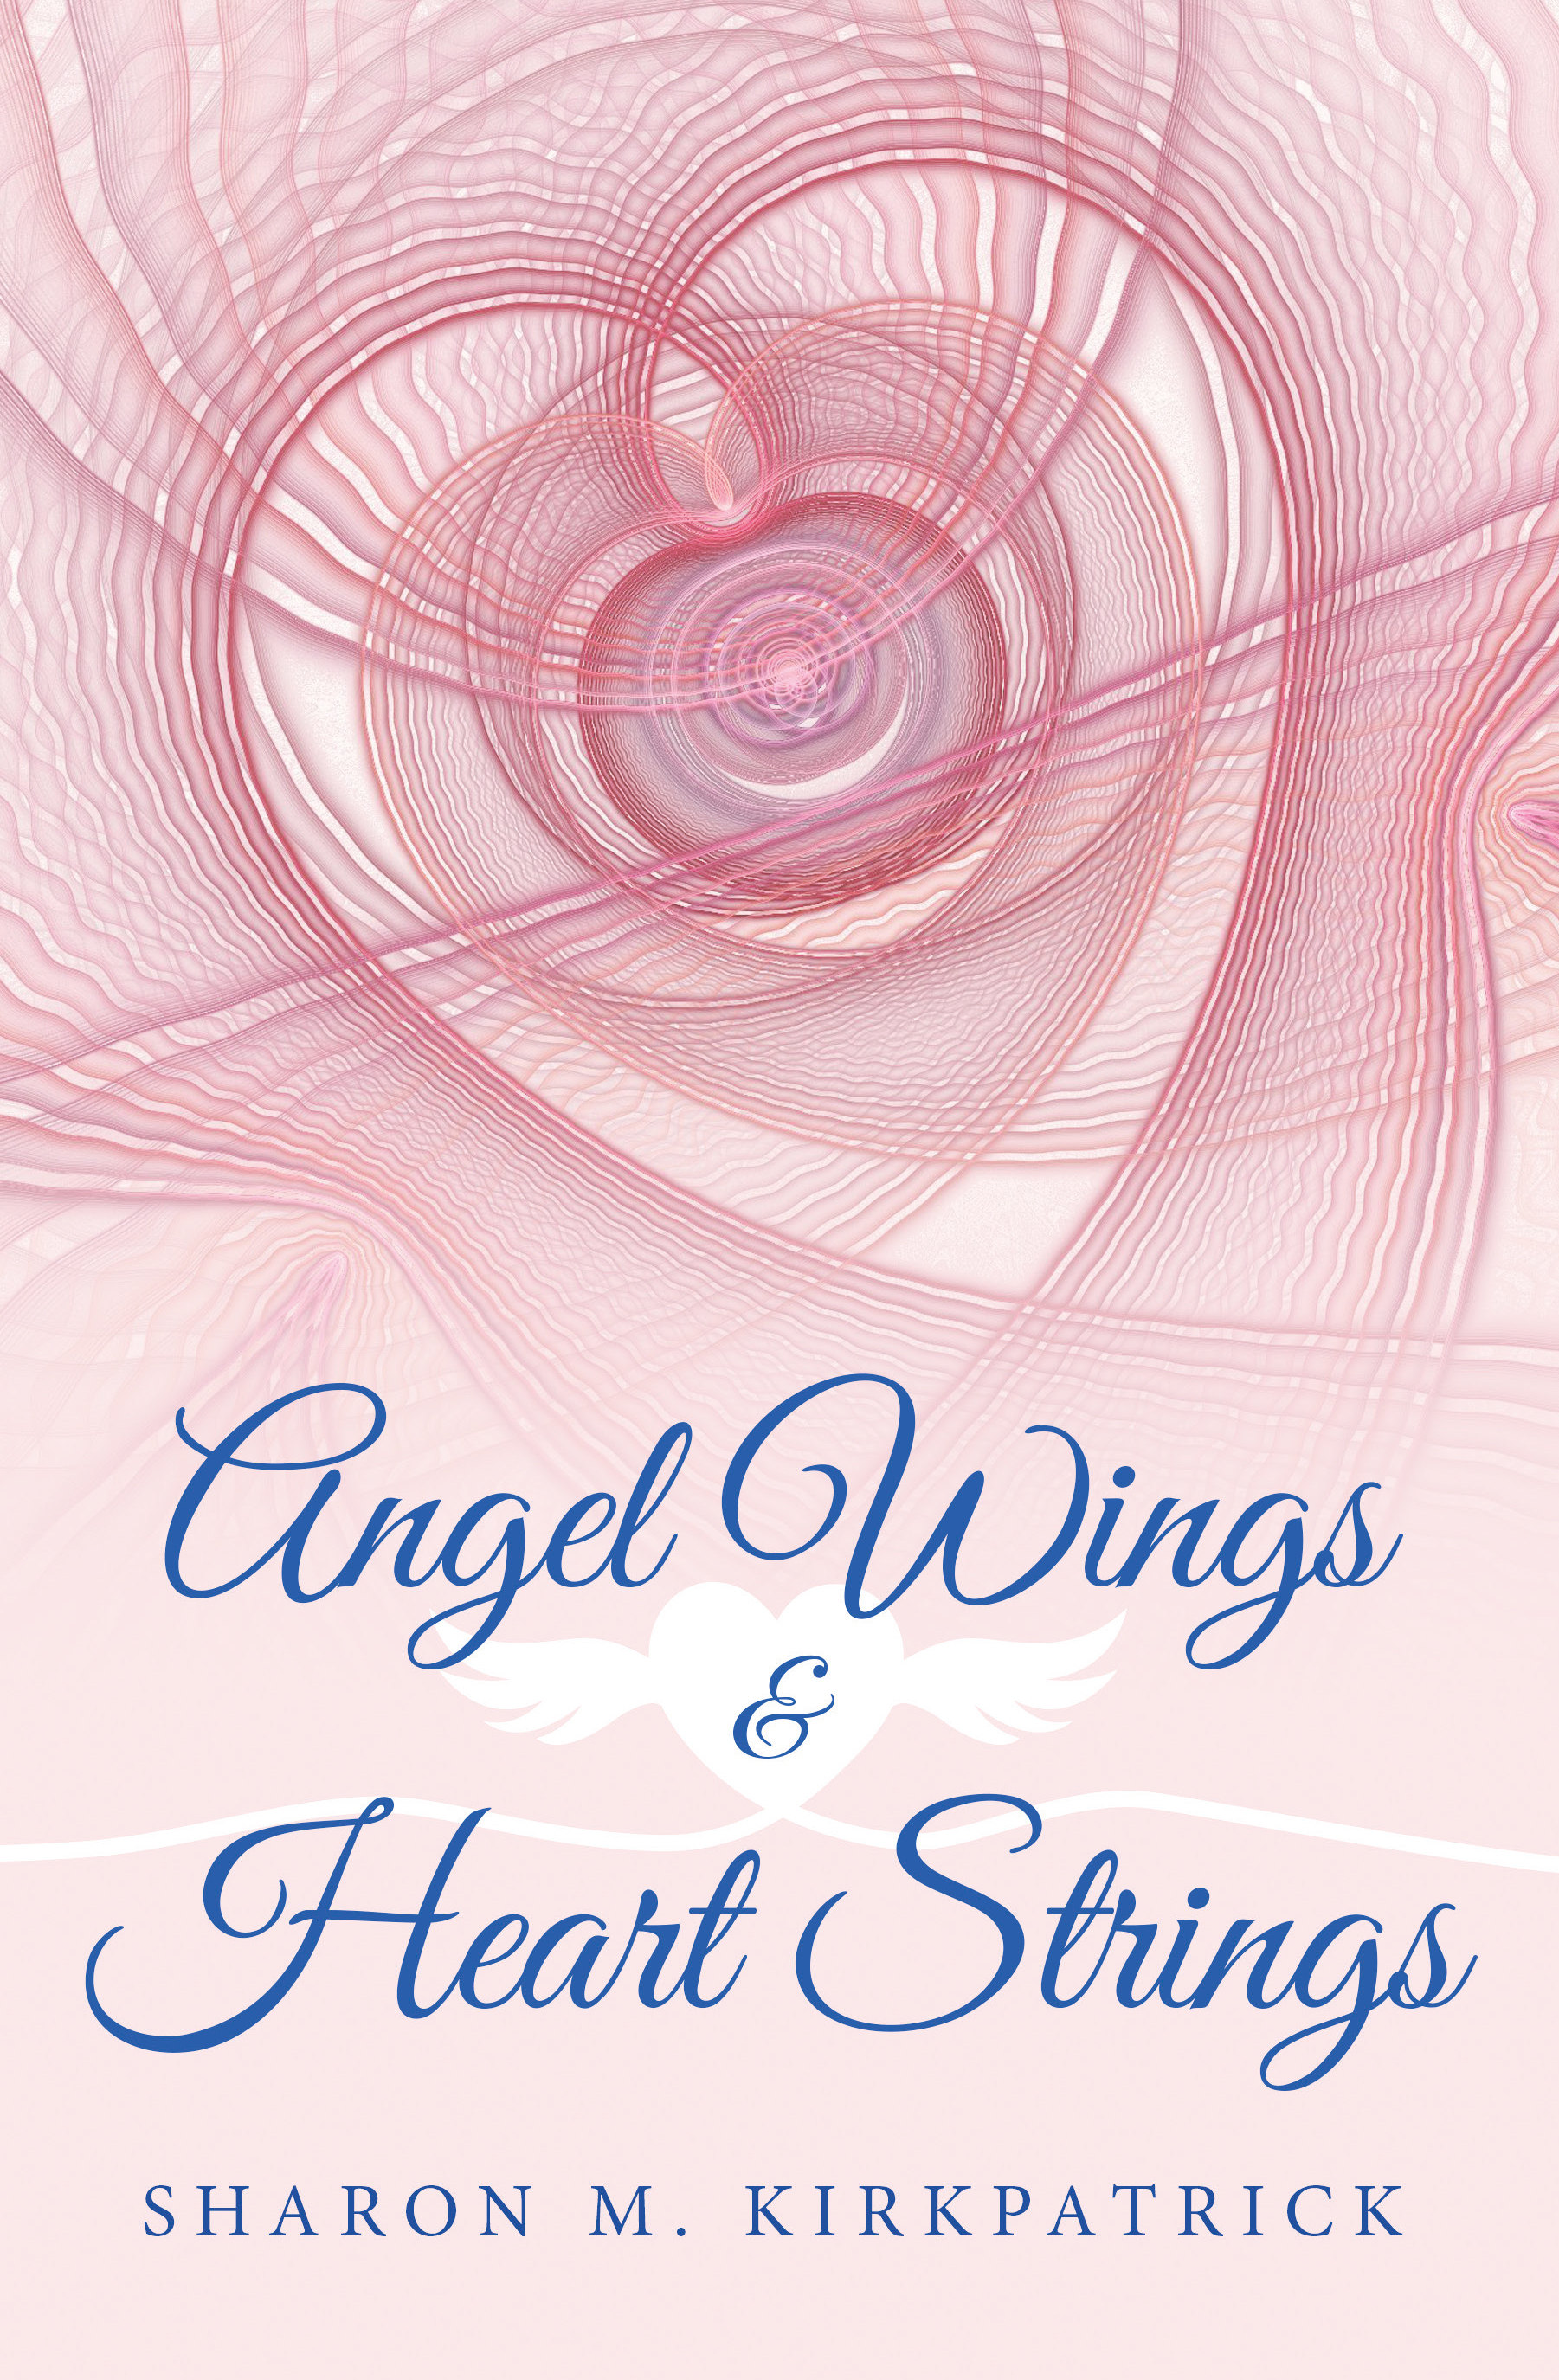 Feathery Glory Showcased in a Book by Sharon Kirkpatrick